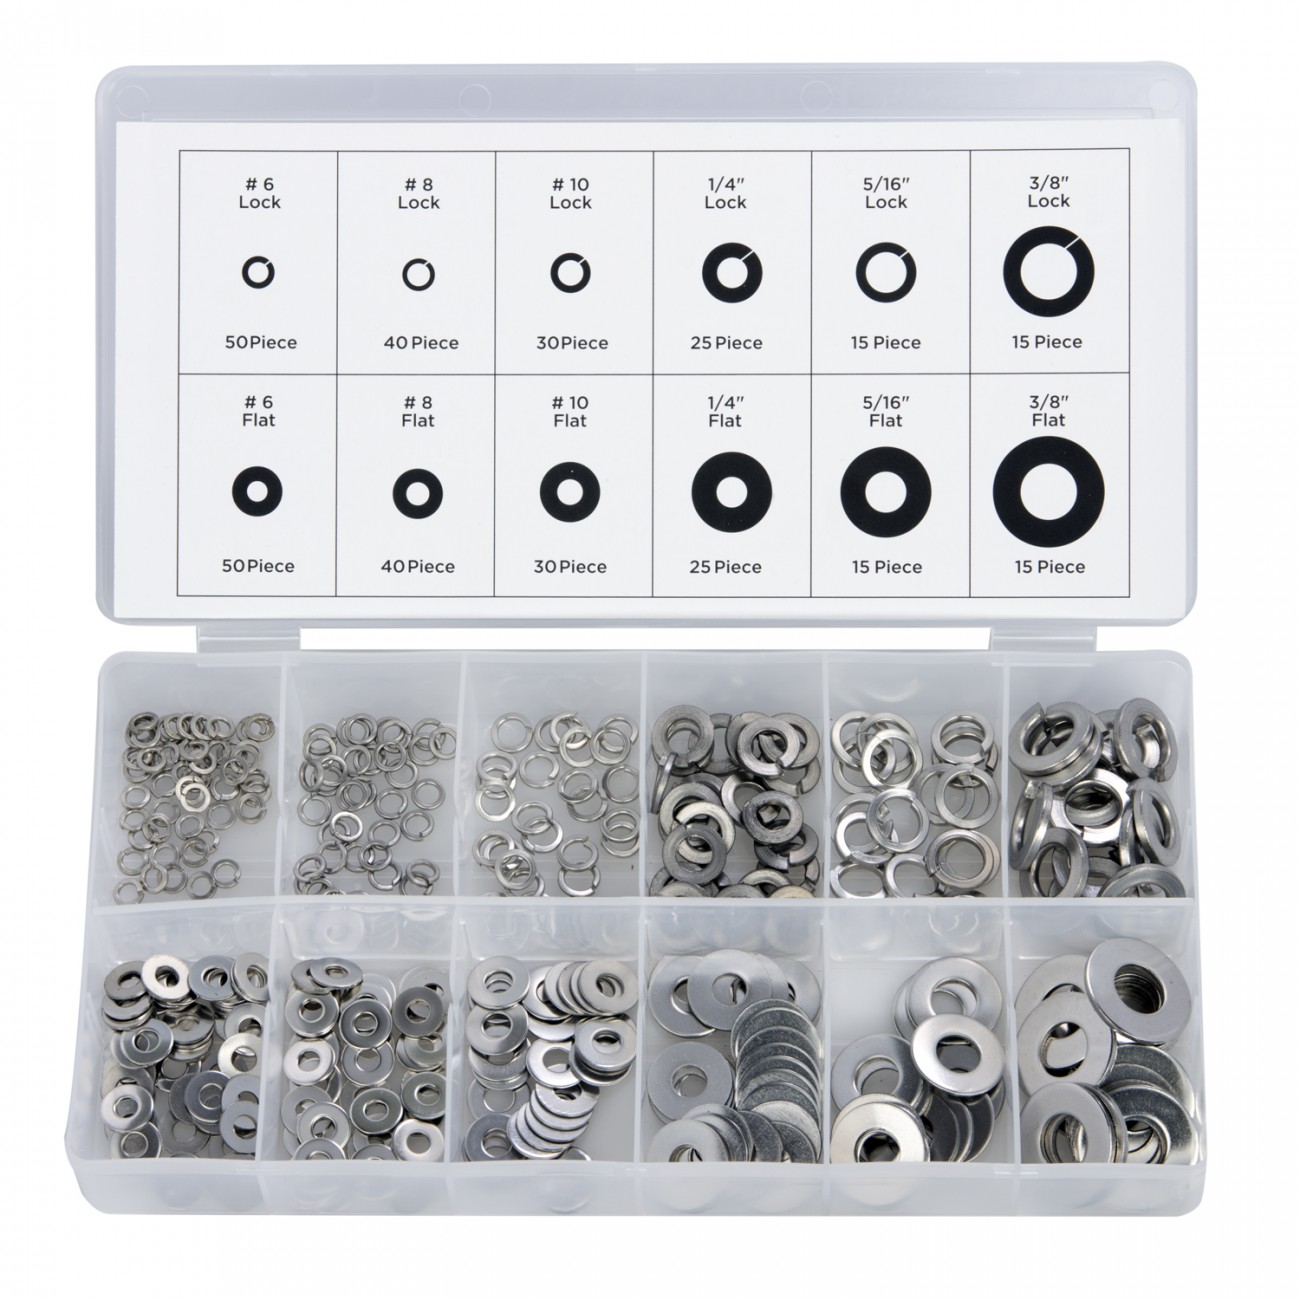 350PC WASHER ASSORTMENT - FLAT & LOCK STAINLESS STEEL